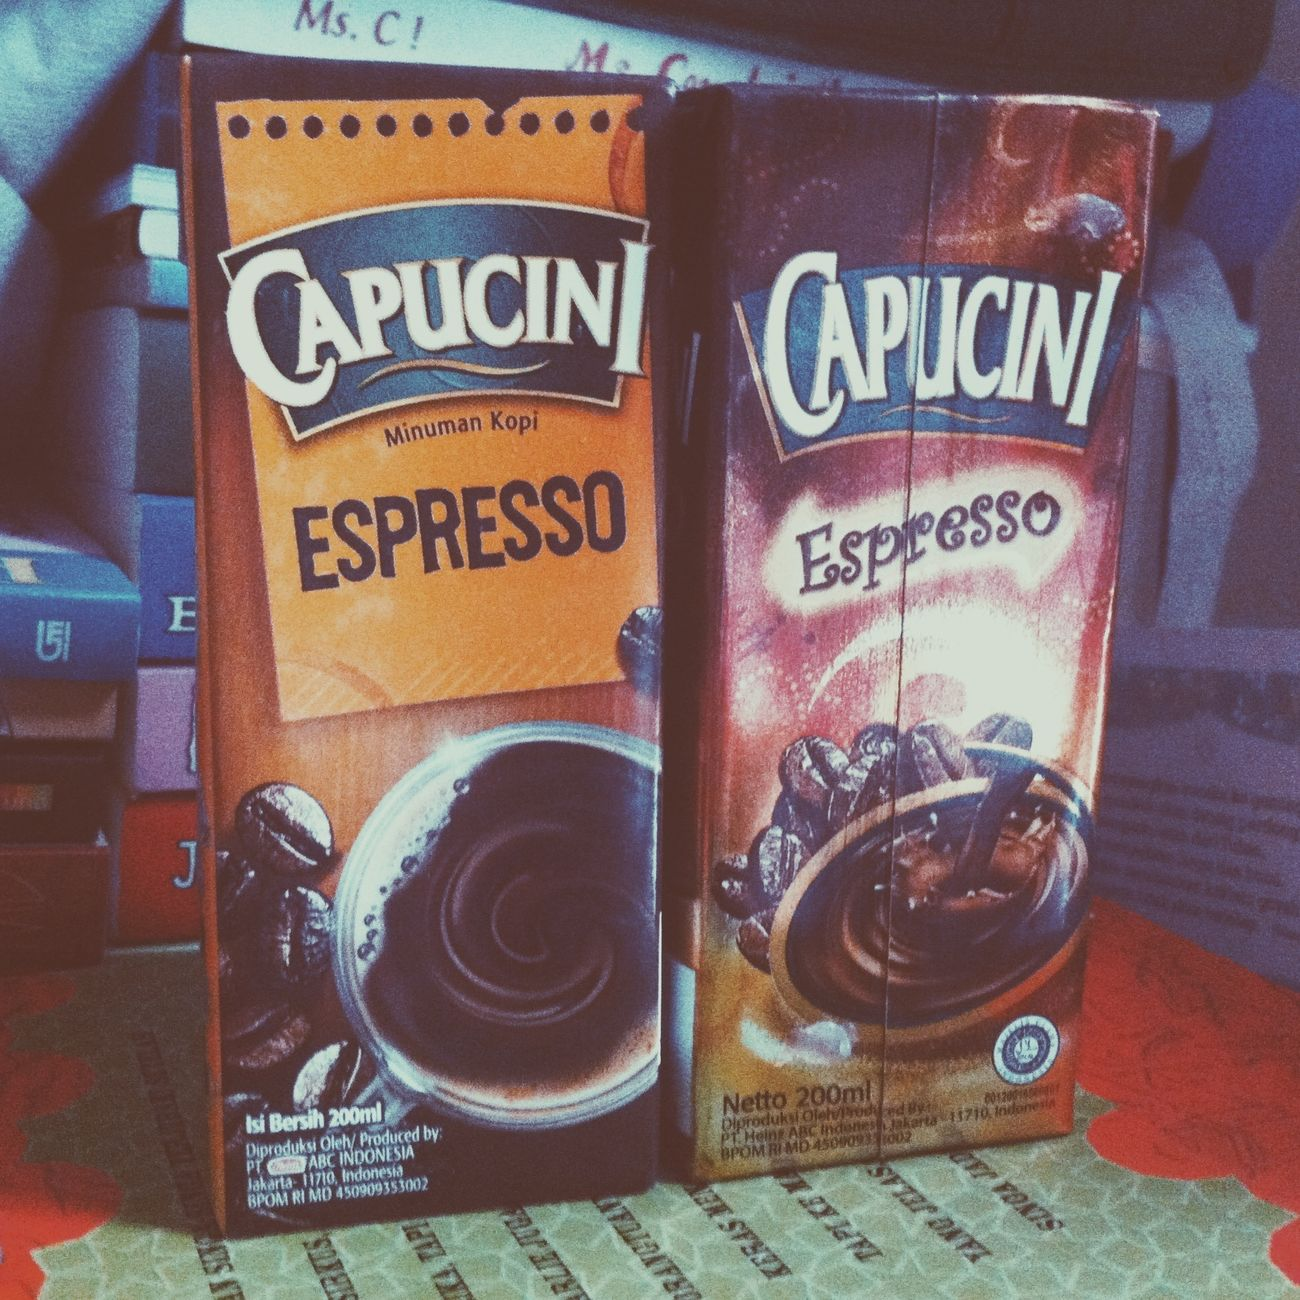 Capucini New vs Old packaging